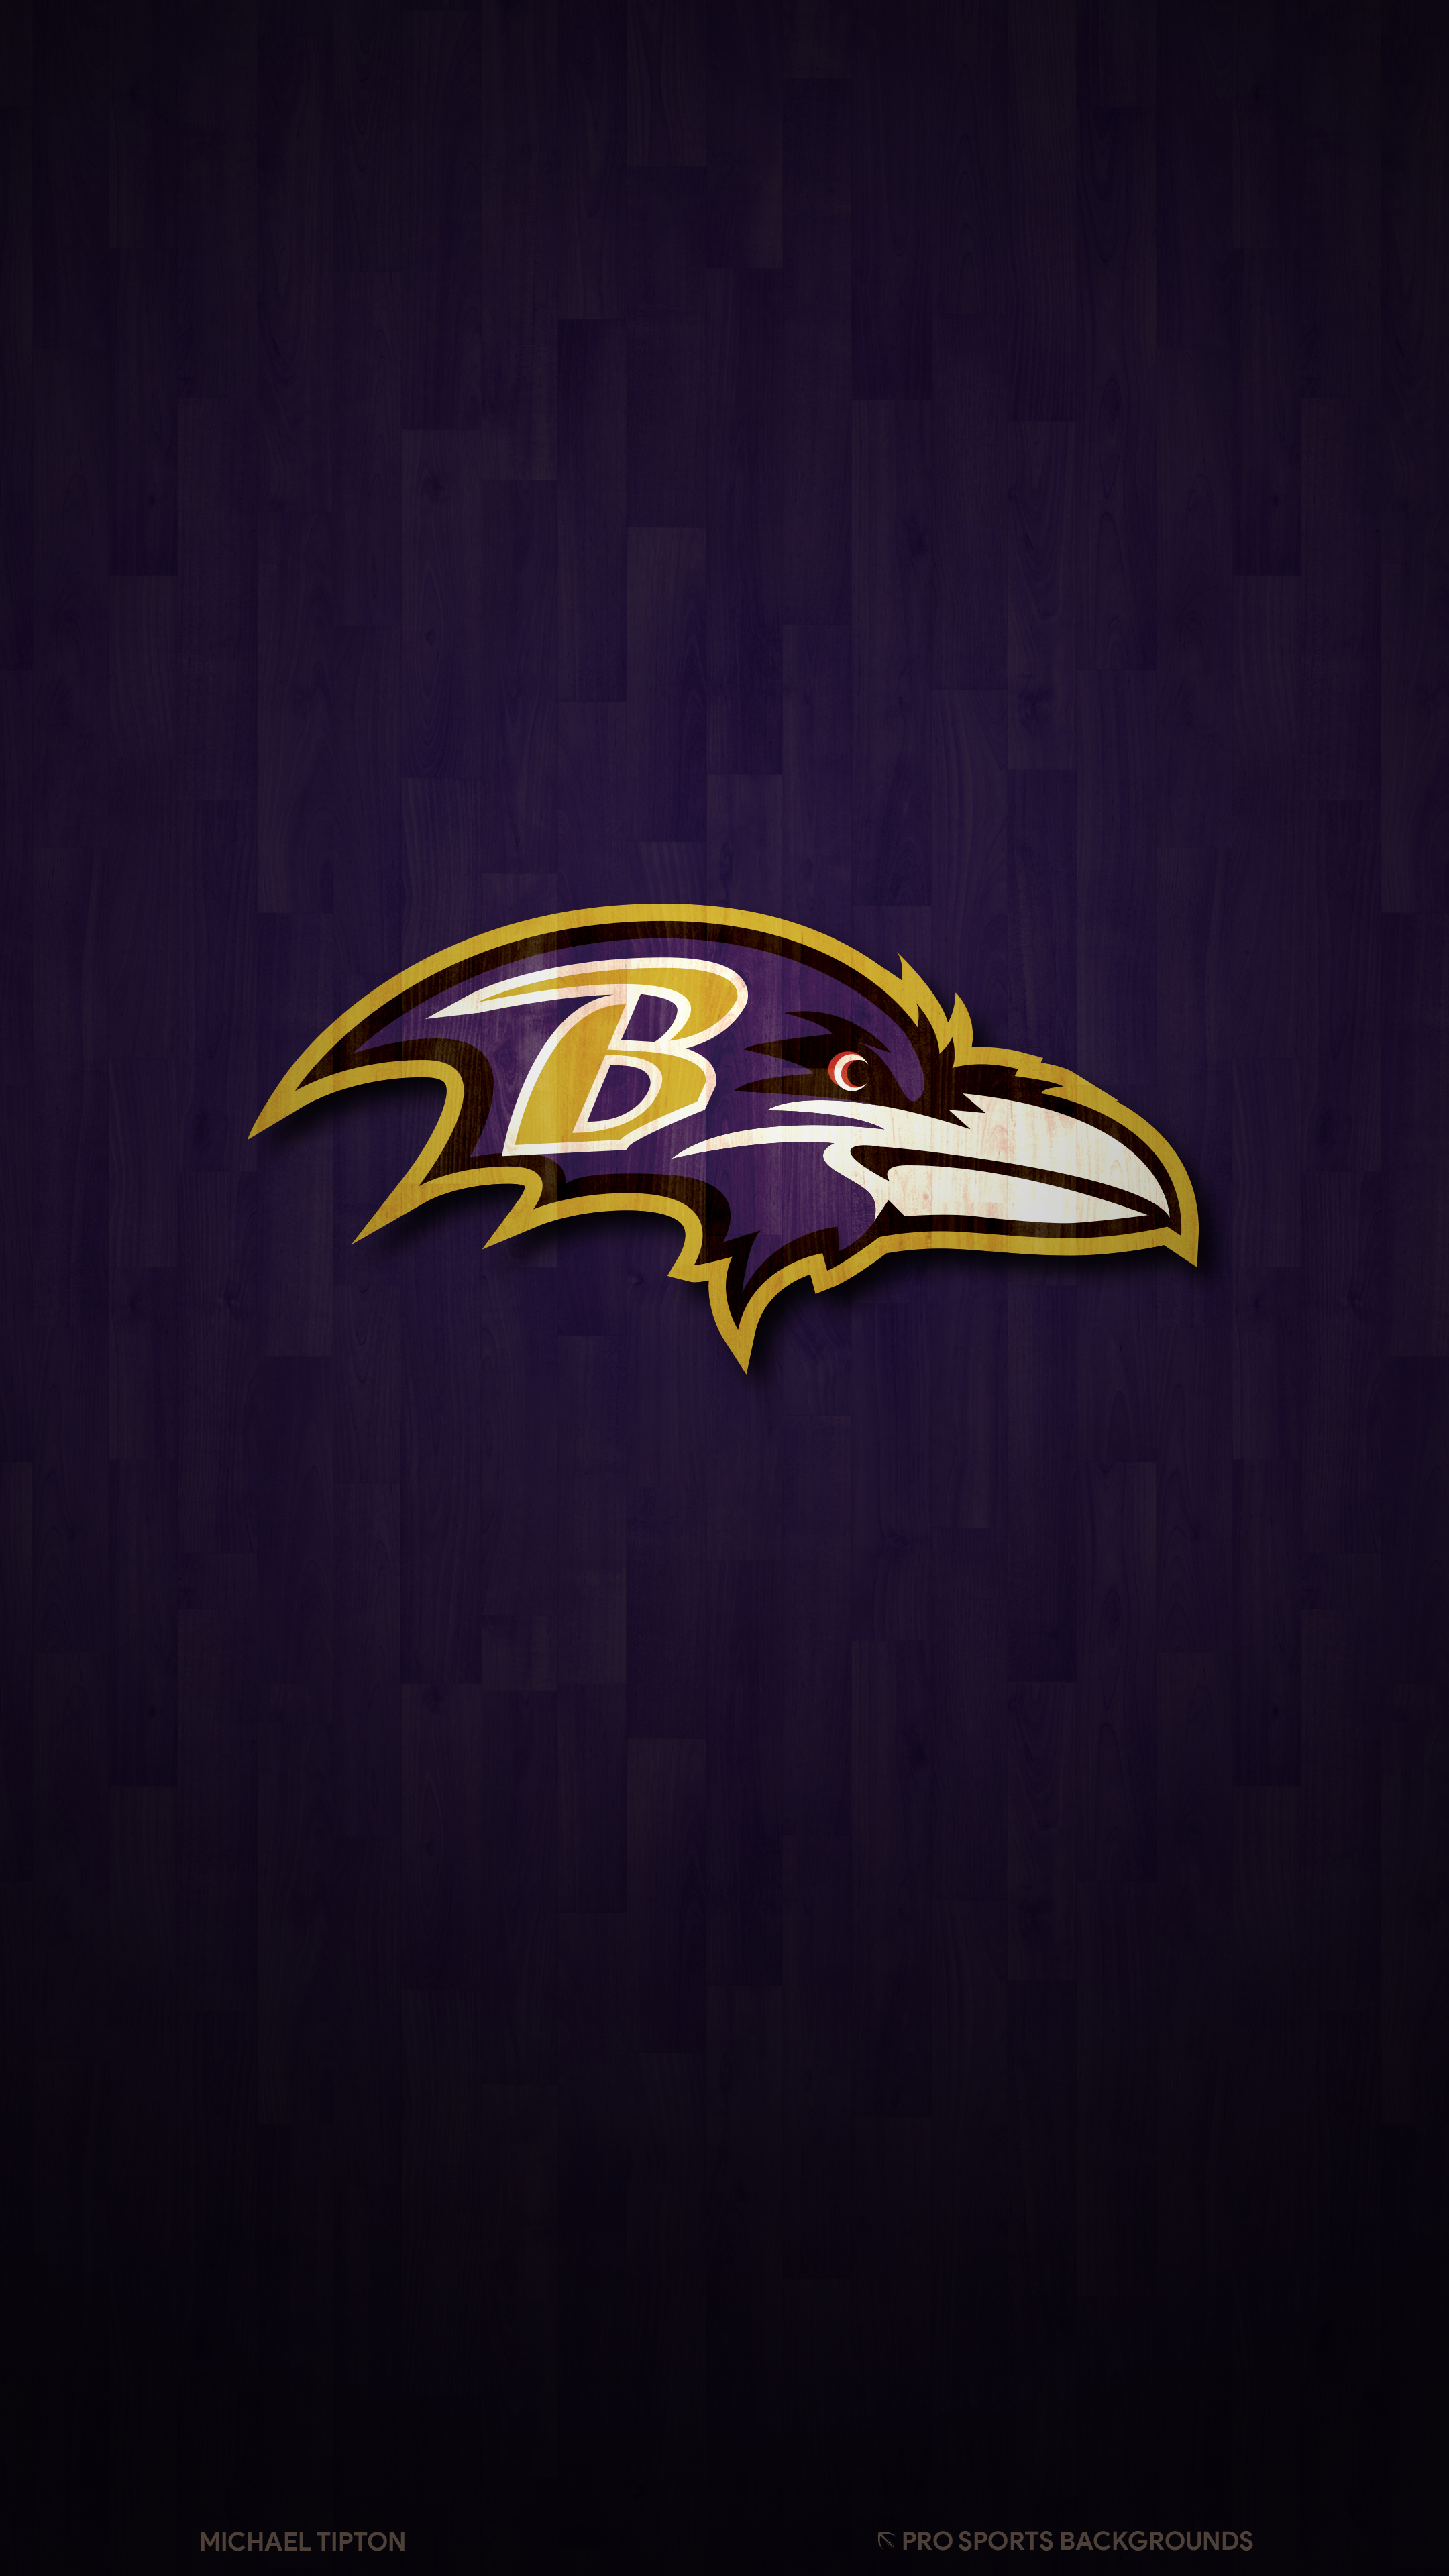 2019 Baltimore Ravens Wallpapers Pro Sports Backgrounds 2160x3840